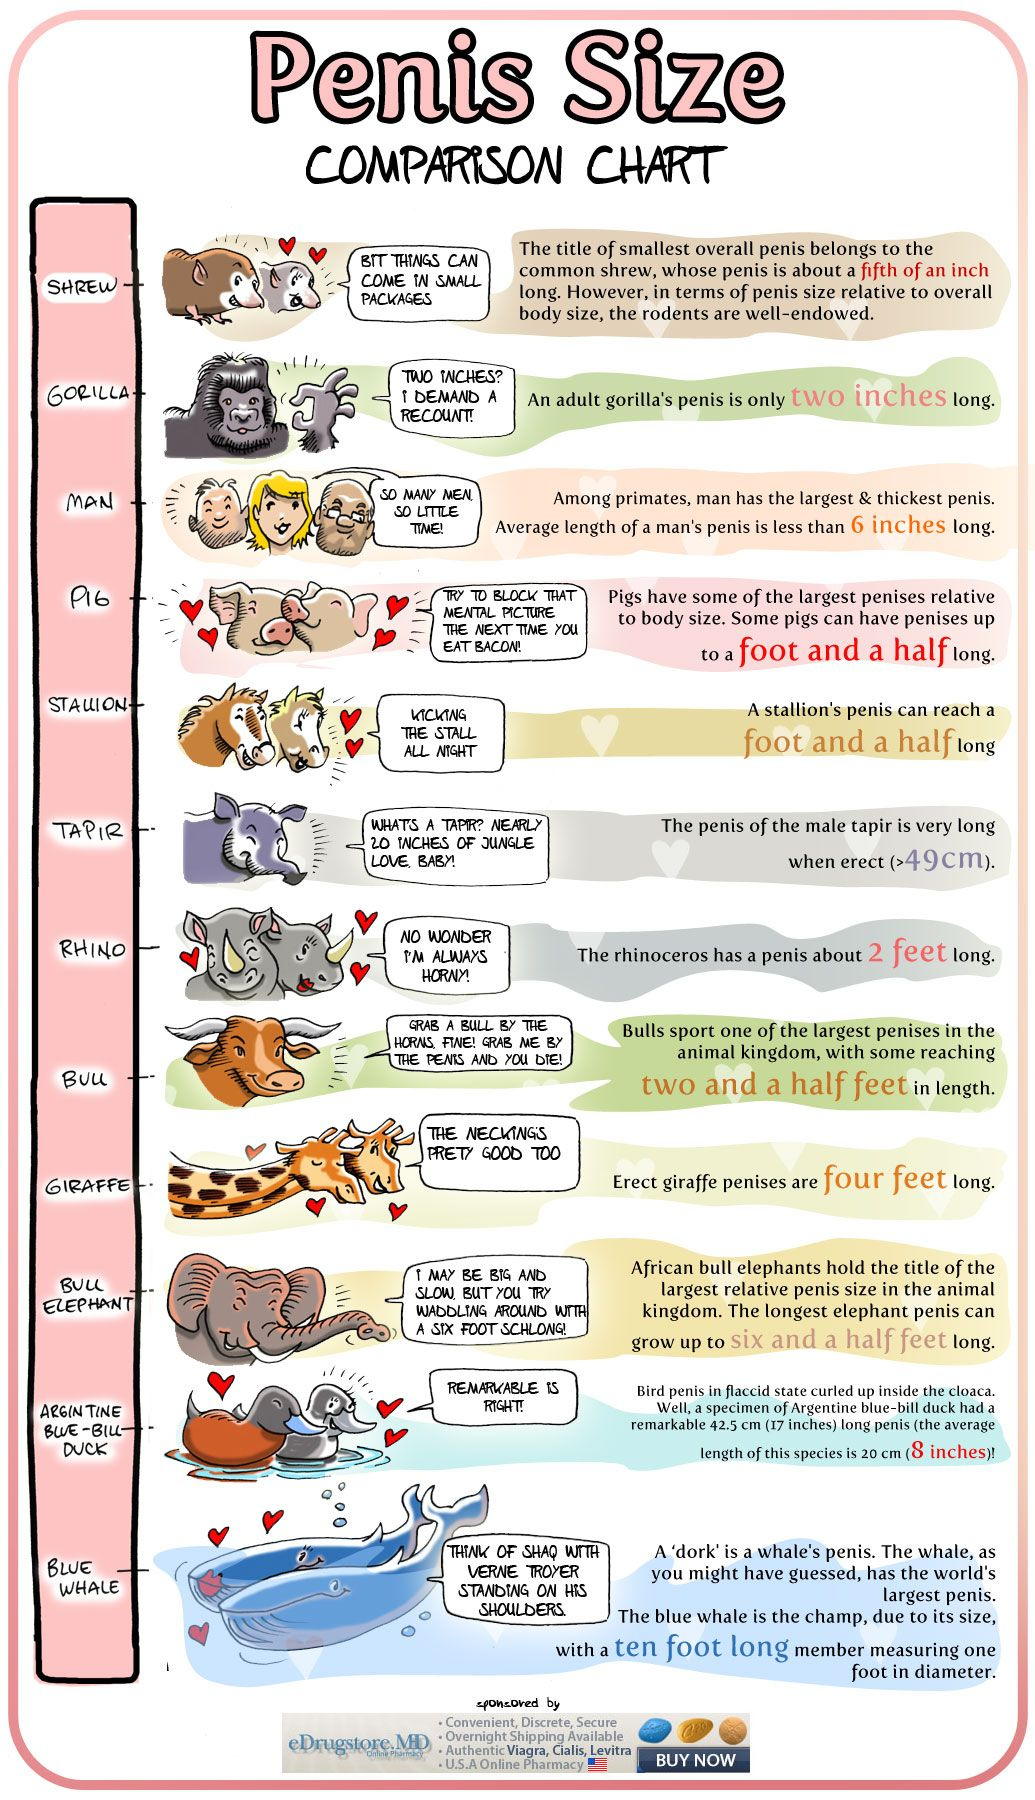 Penis-size-does-matter-infographic.jpg (2280×1782) | Sexxxy | Pinterest